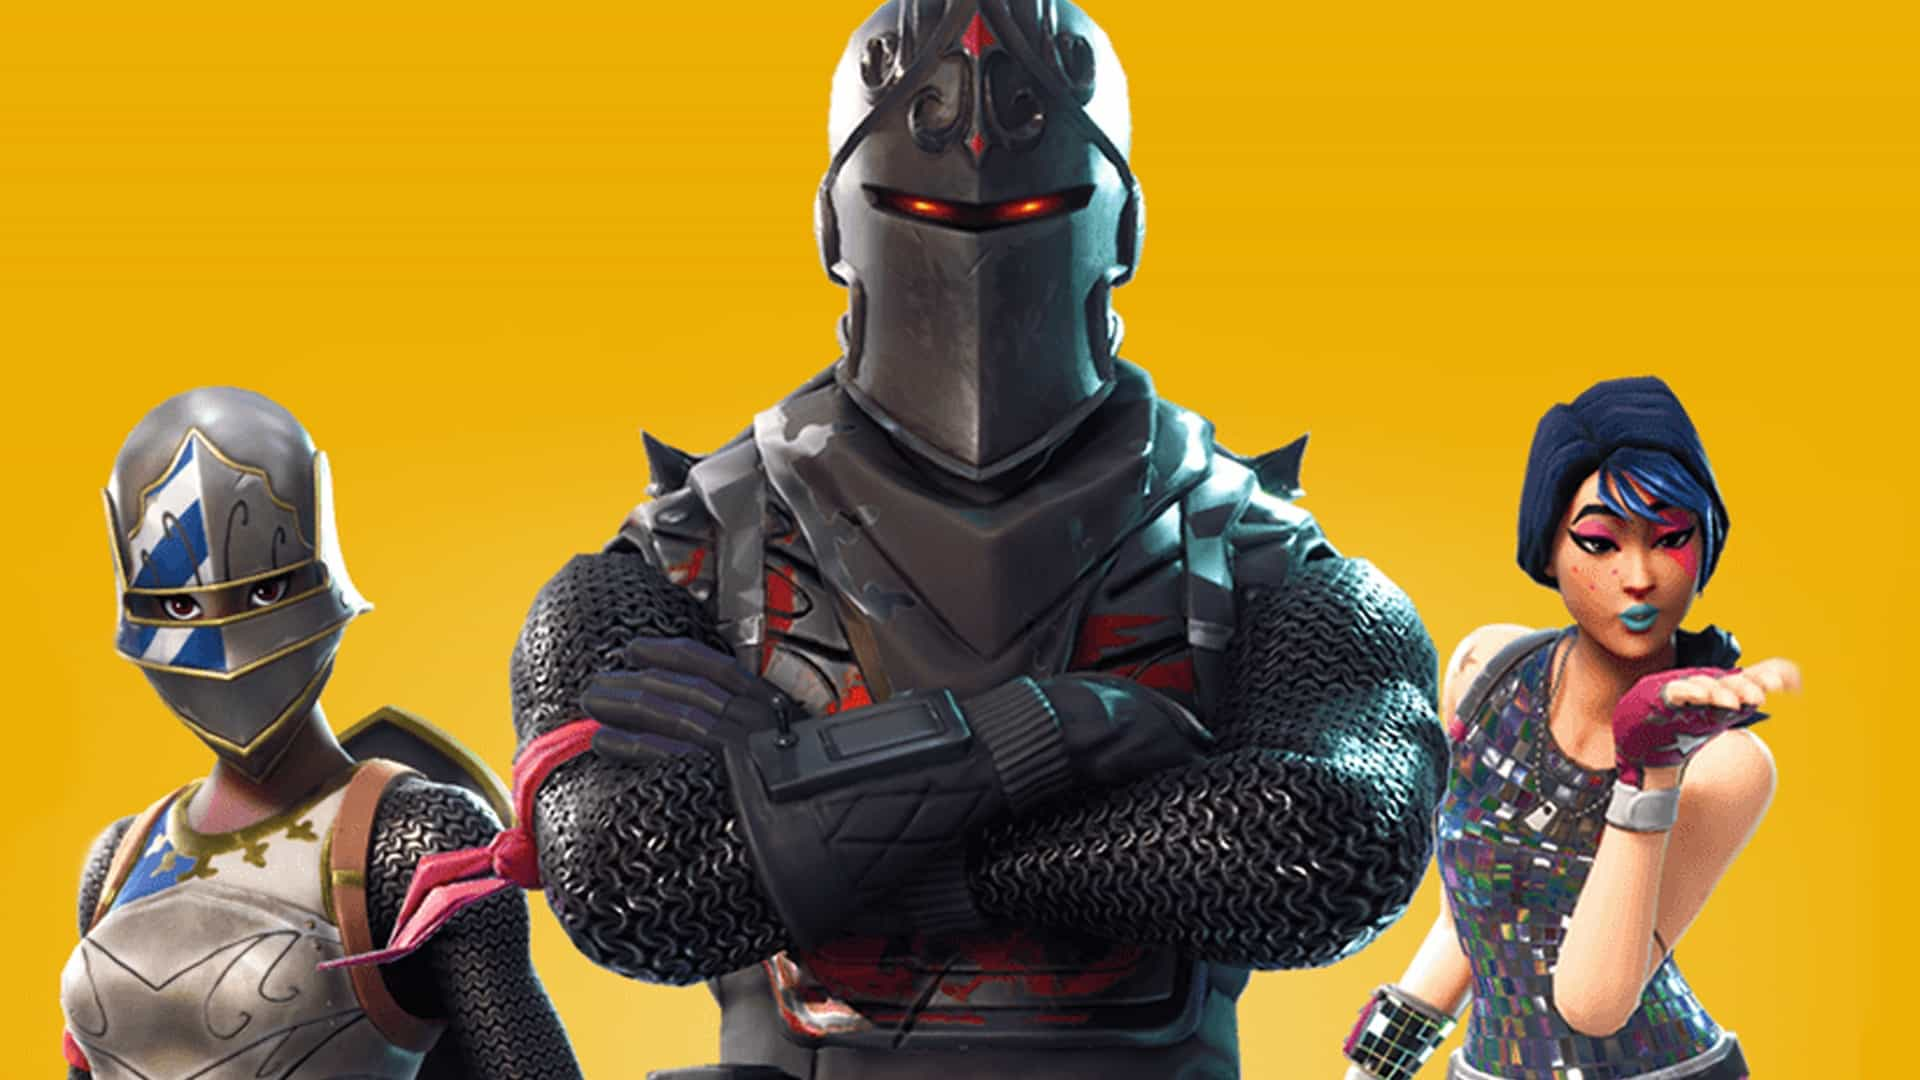 Fortnite Starter Pack Release Date and Contents Confirmed